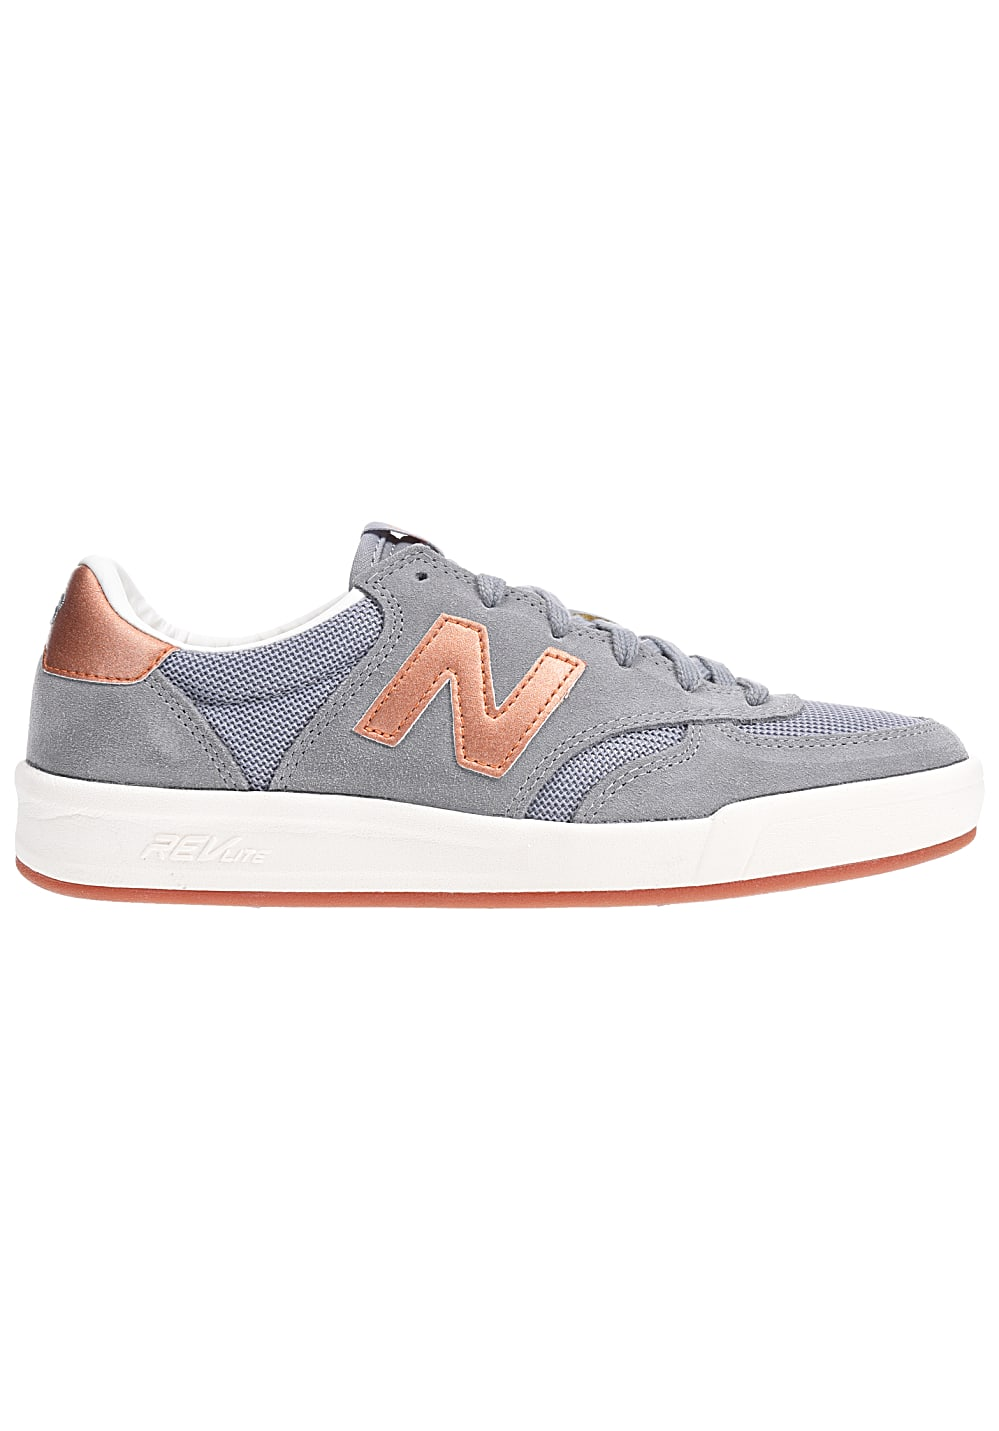 NEW BALANCE WRT300 B - Sneaker für Damen - Grau - Planet Sports